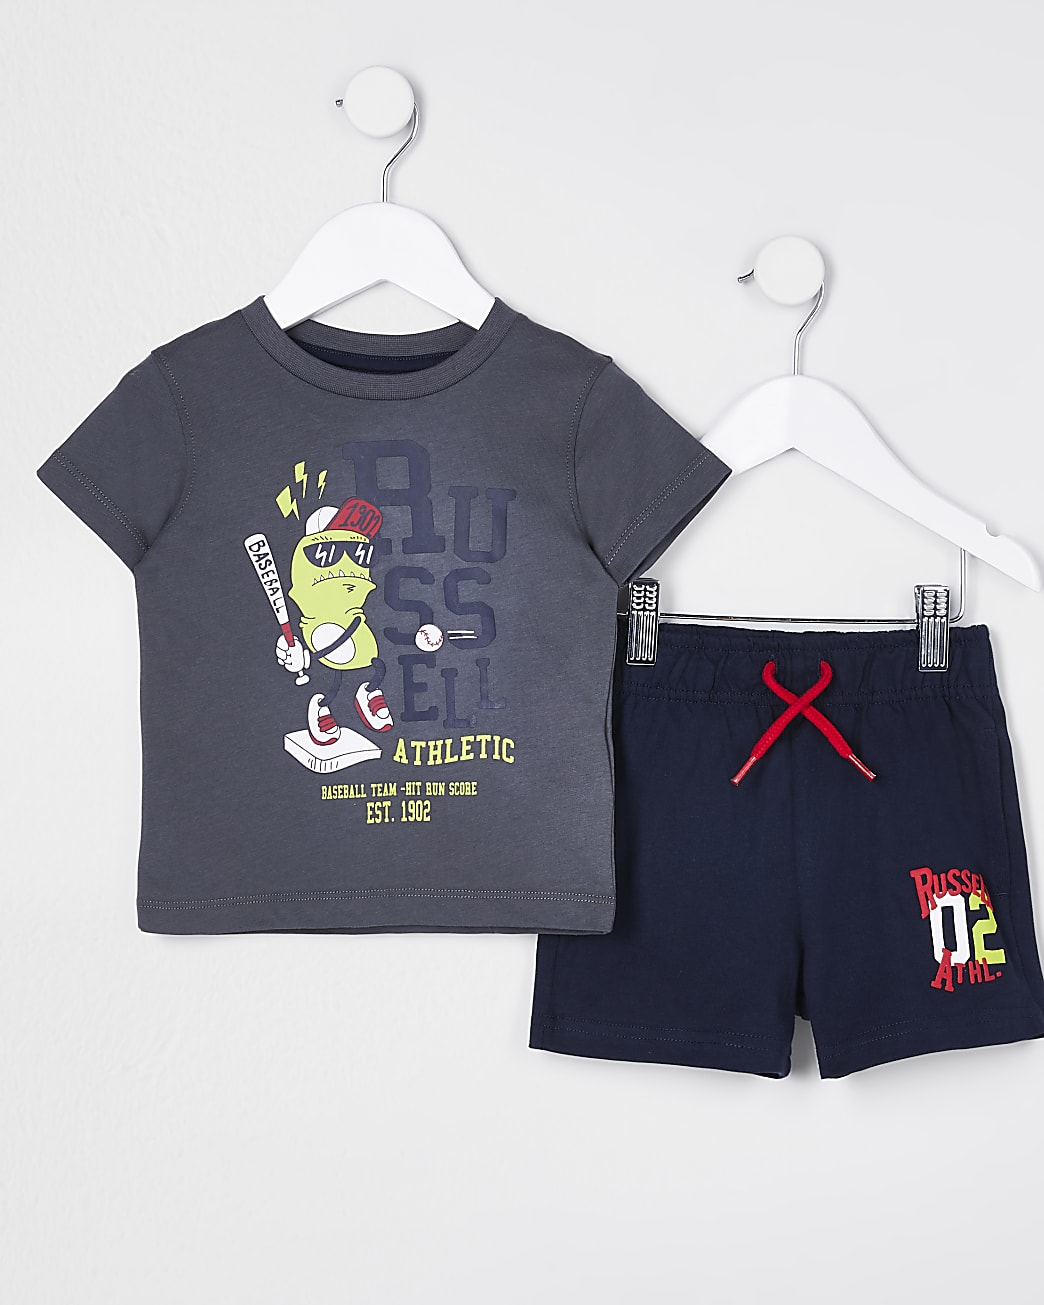 Mini boys Russell Athletic t-shirt outfit